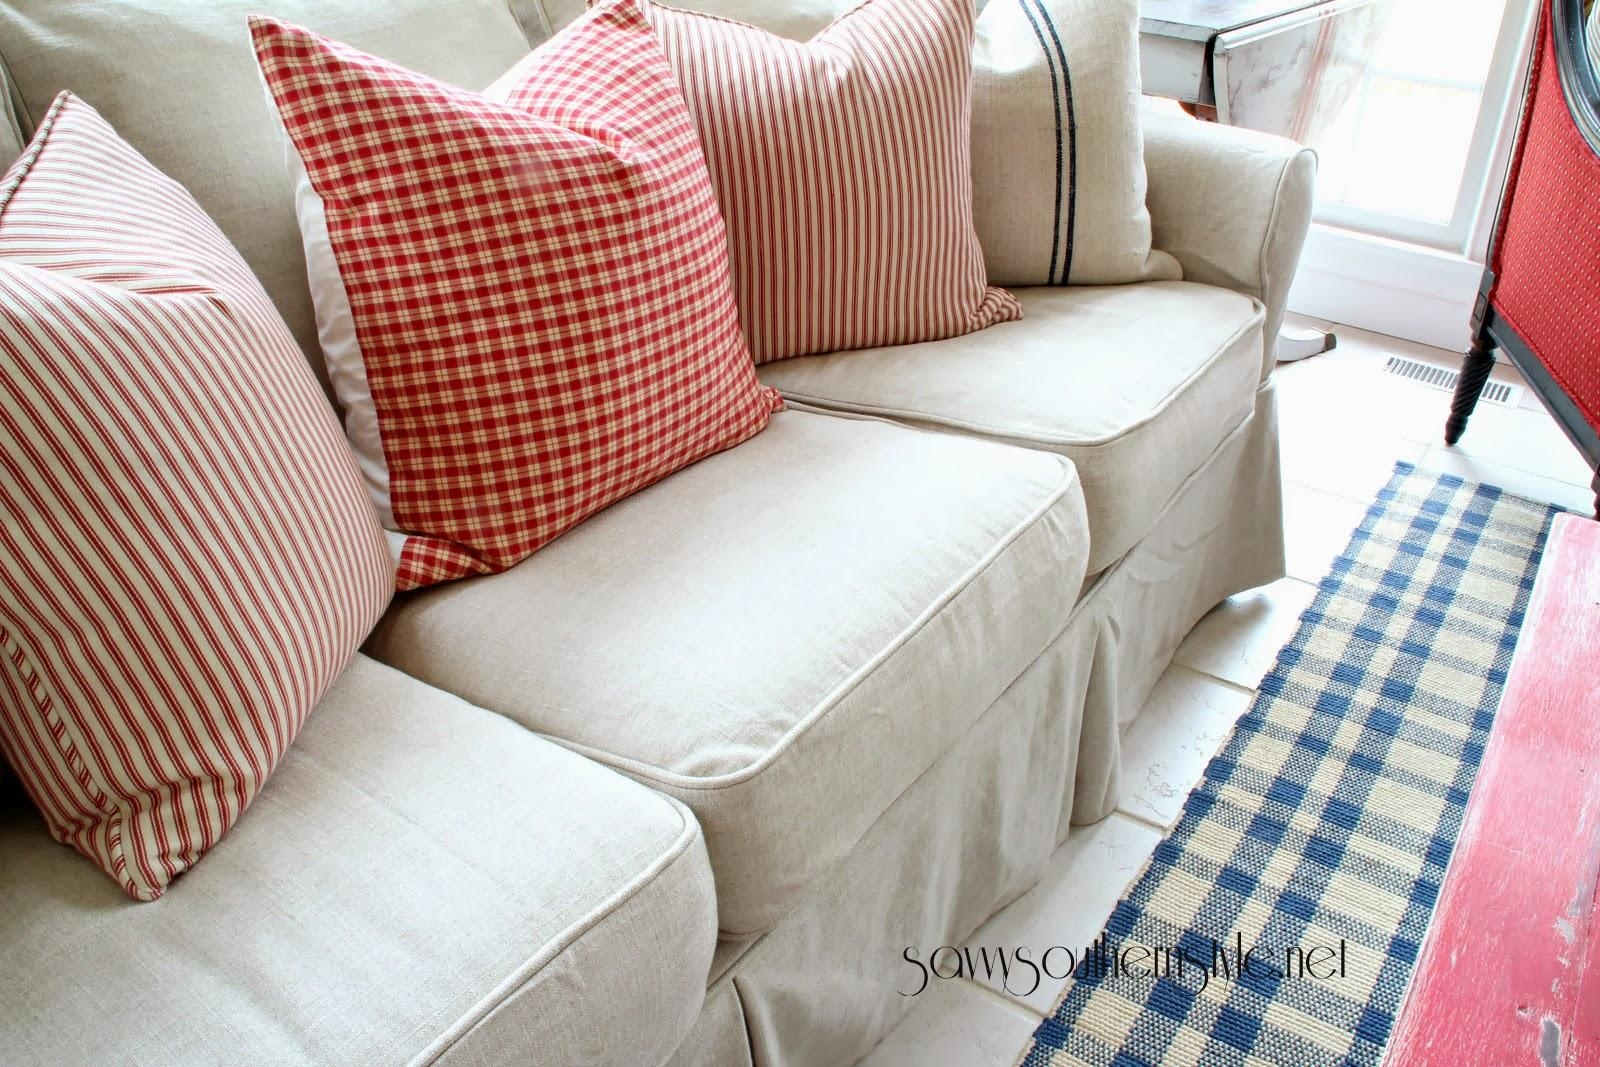 Custom Slipcovers And Couch Cover For Any Sofa Online Regarding Slipcovers Sofas (Image 4 of 20)